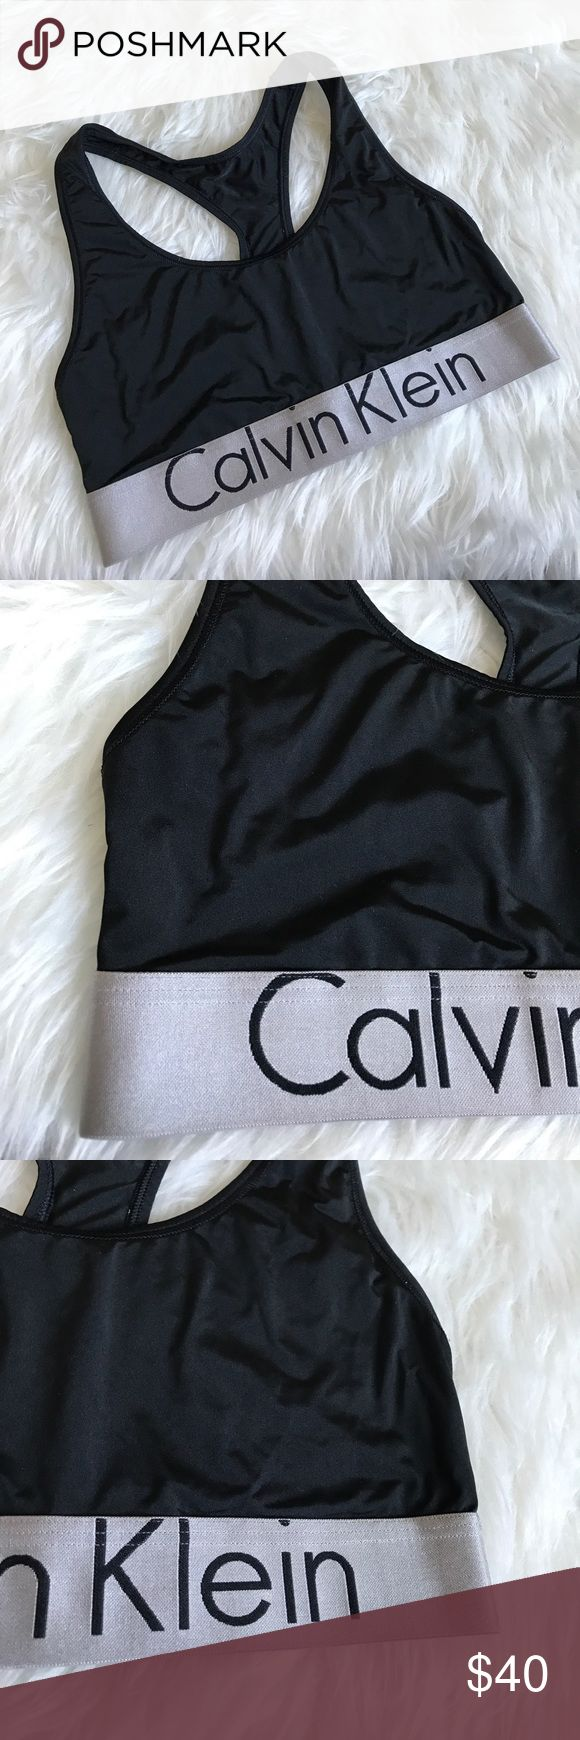 Calvin Klein Black and Silver Sports Bra Bralette Excellent condition. Never worn. No flaws. Not padded. Made from 86% nylon and 14% elastane. Calvin Klein Intimates & Sleepwear Bras